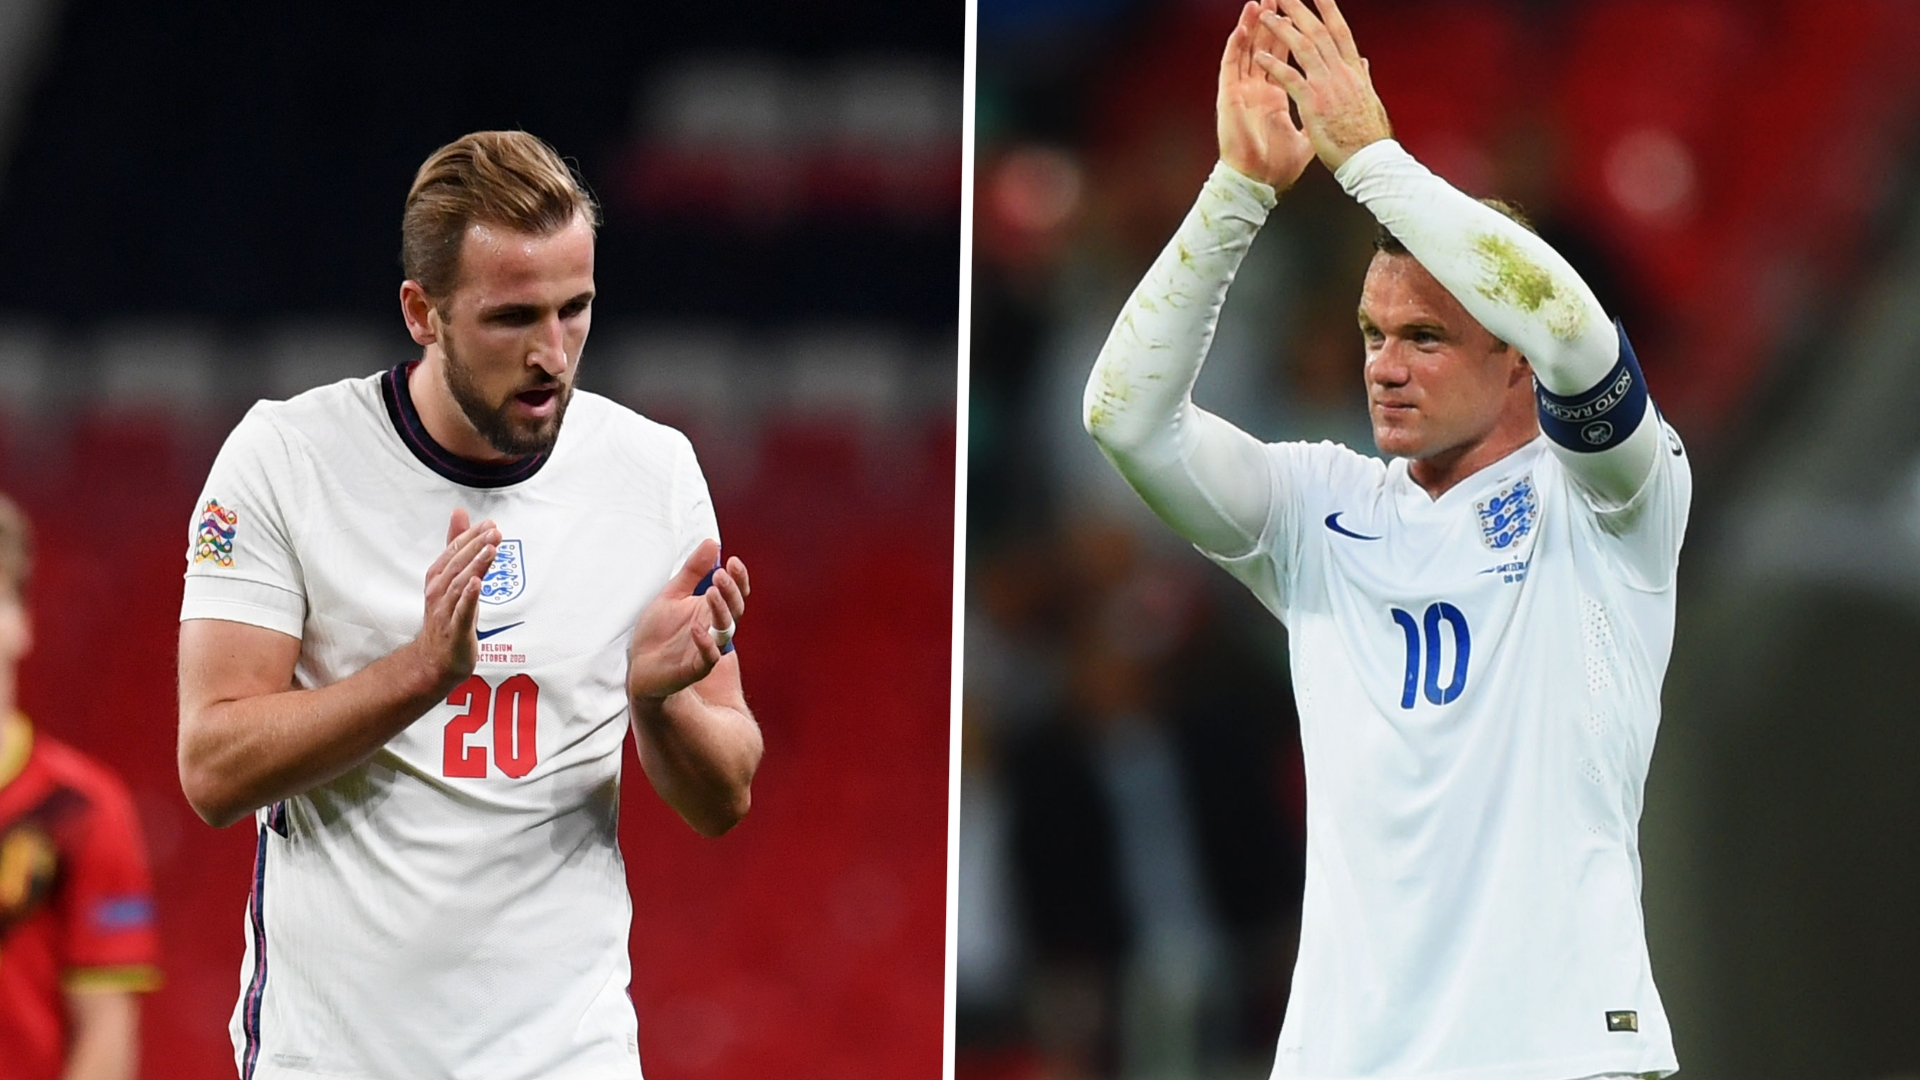 'Kane wants Rooney's England record, not a rest' - Spurs striker will play through pain, says Huddlestone